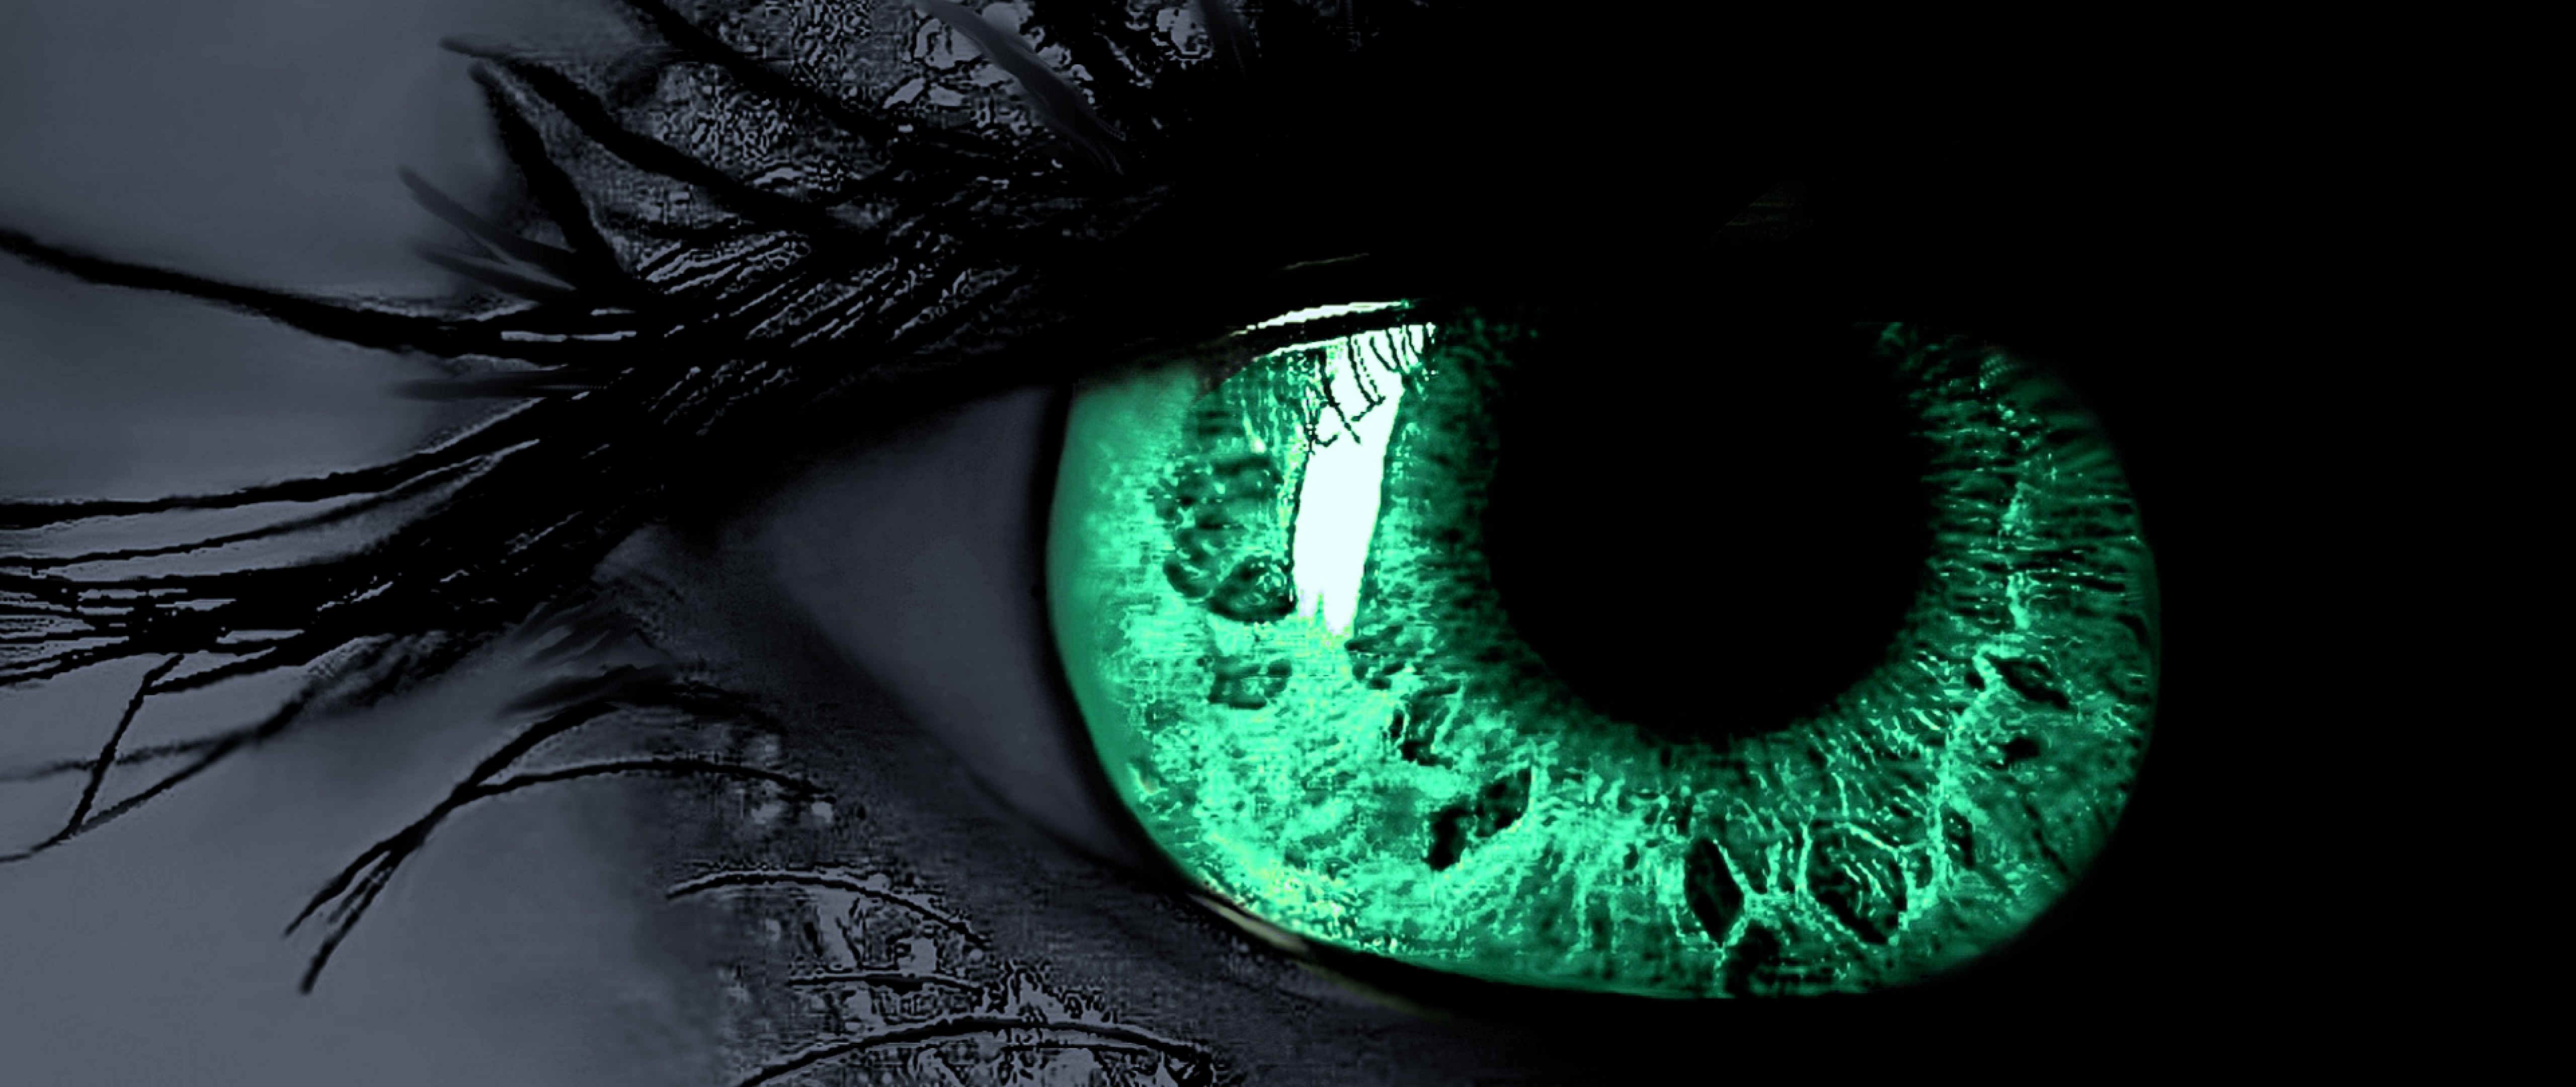 Green Eyes Beautiful Hd Wallpaper for Desktop and Mobiles